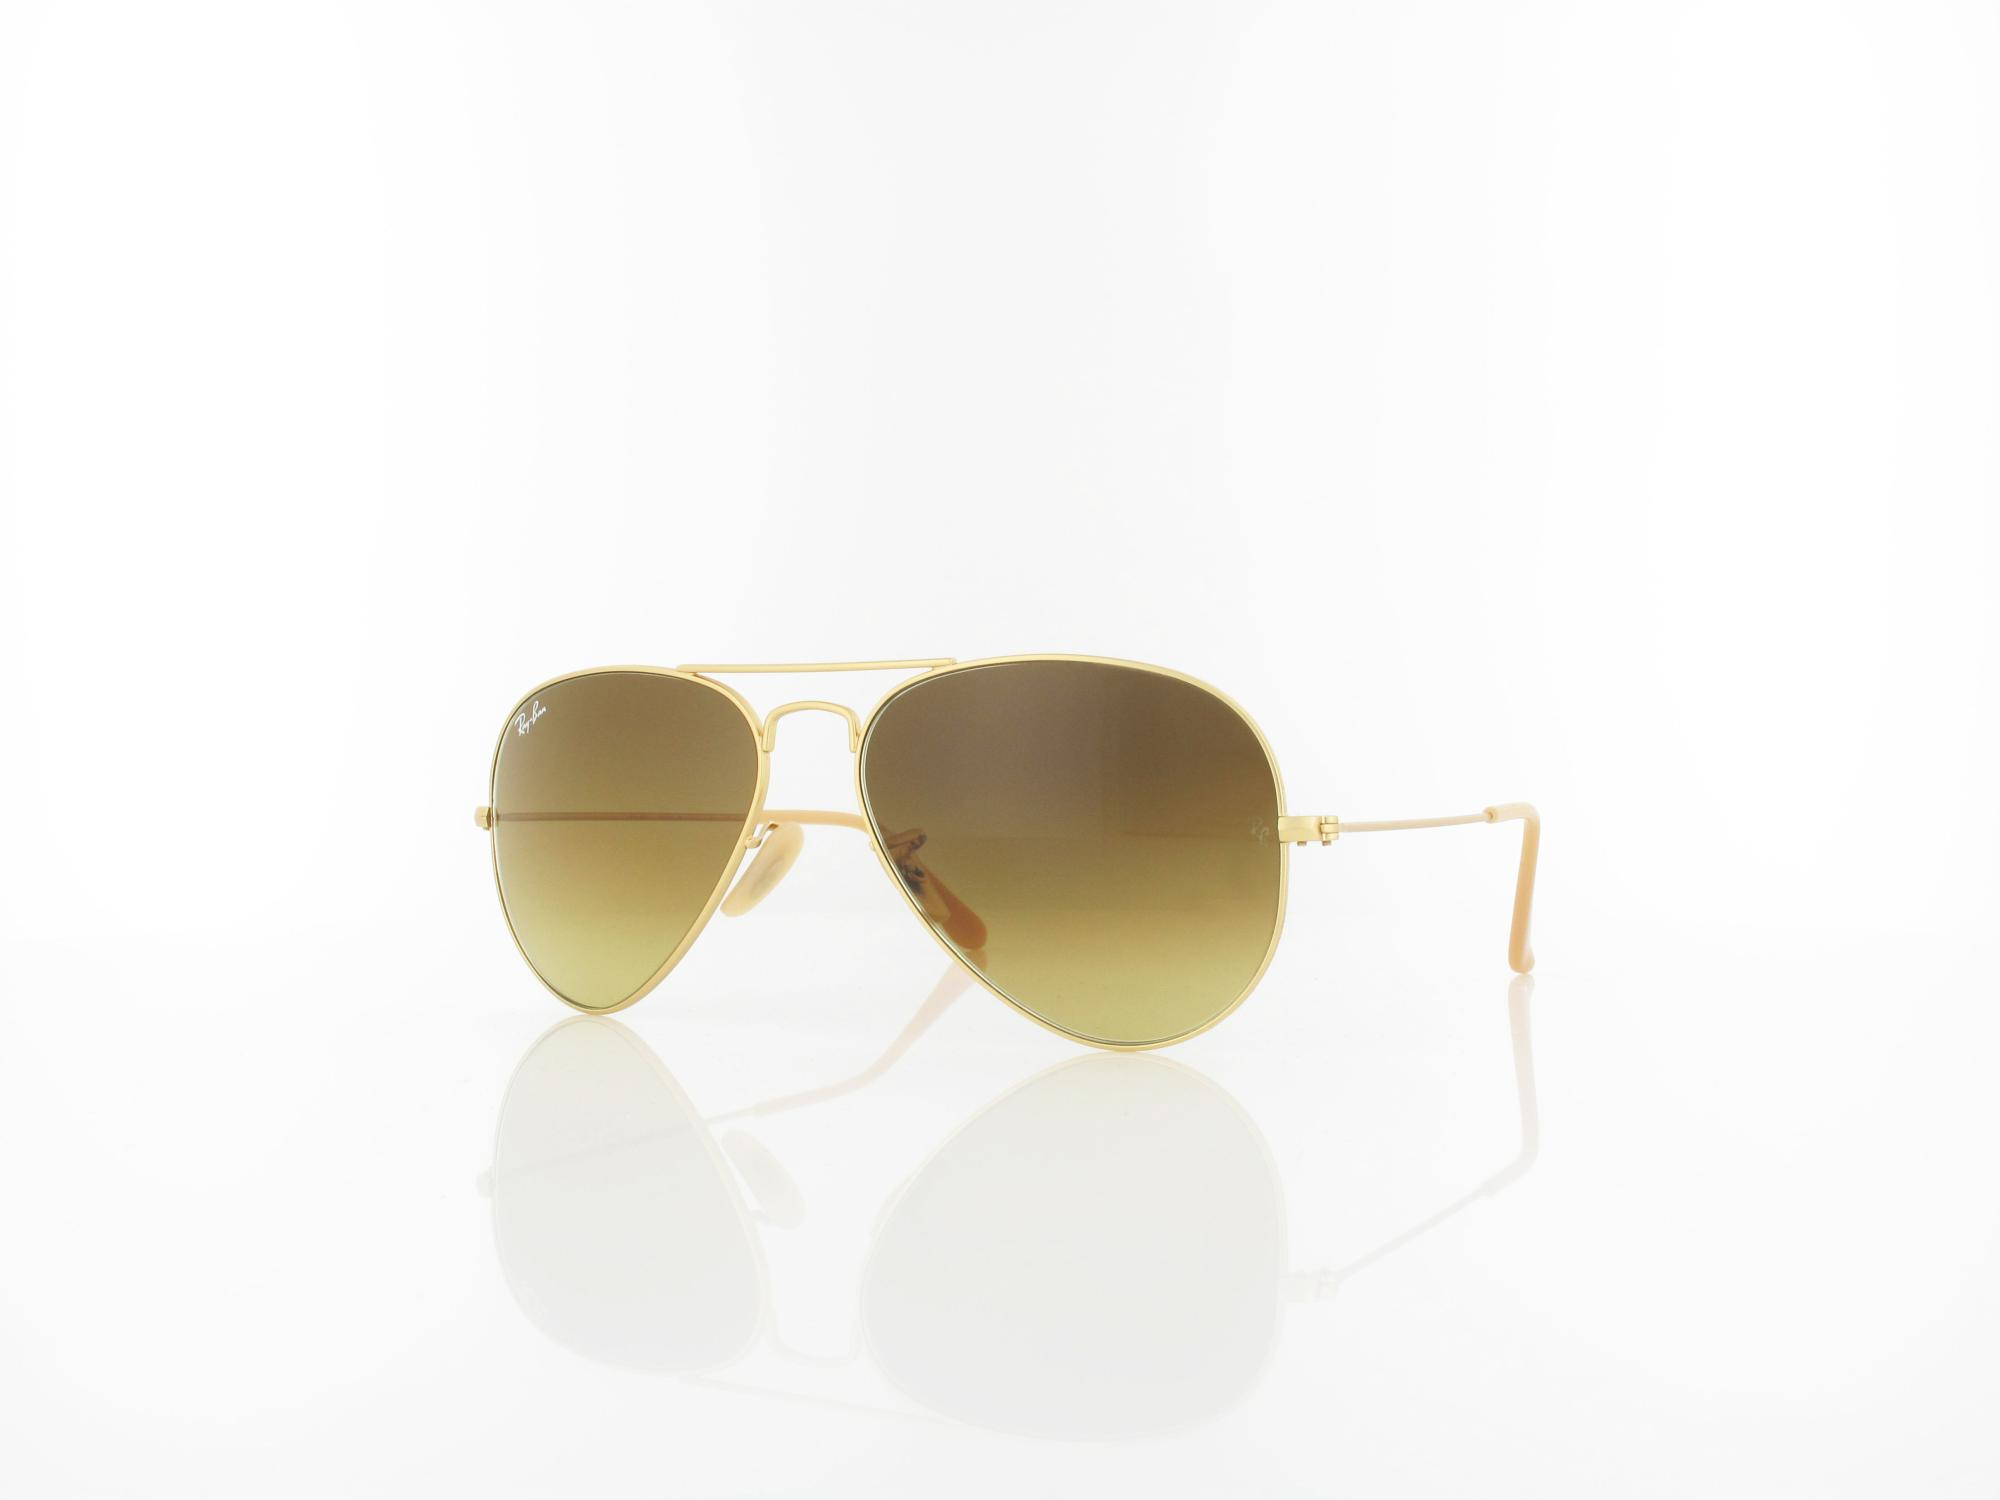 Ray Ban | Aviator Large Metal RB3025 112/85 55 | matte gold / brown gradient